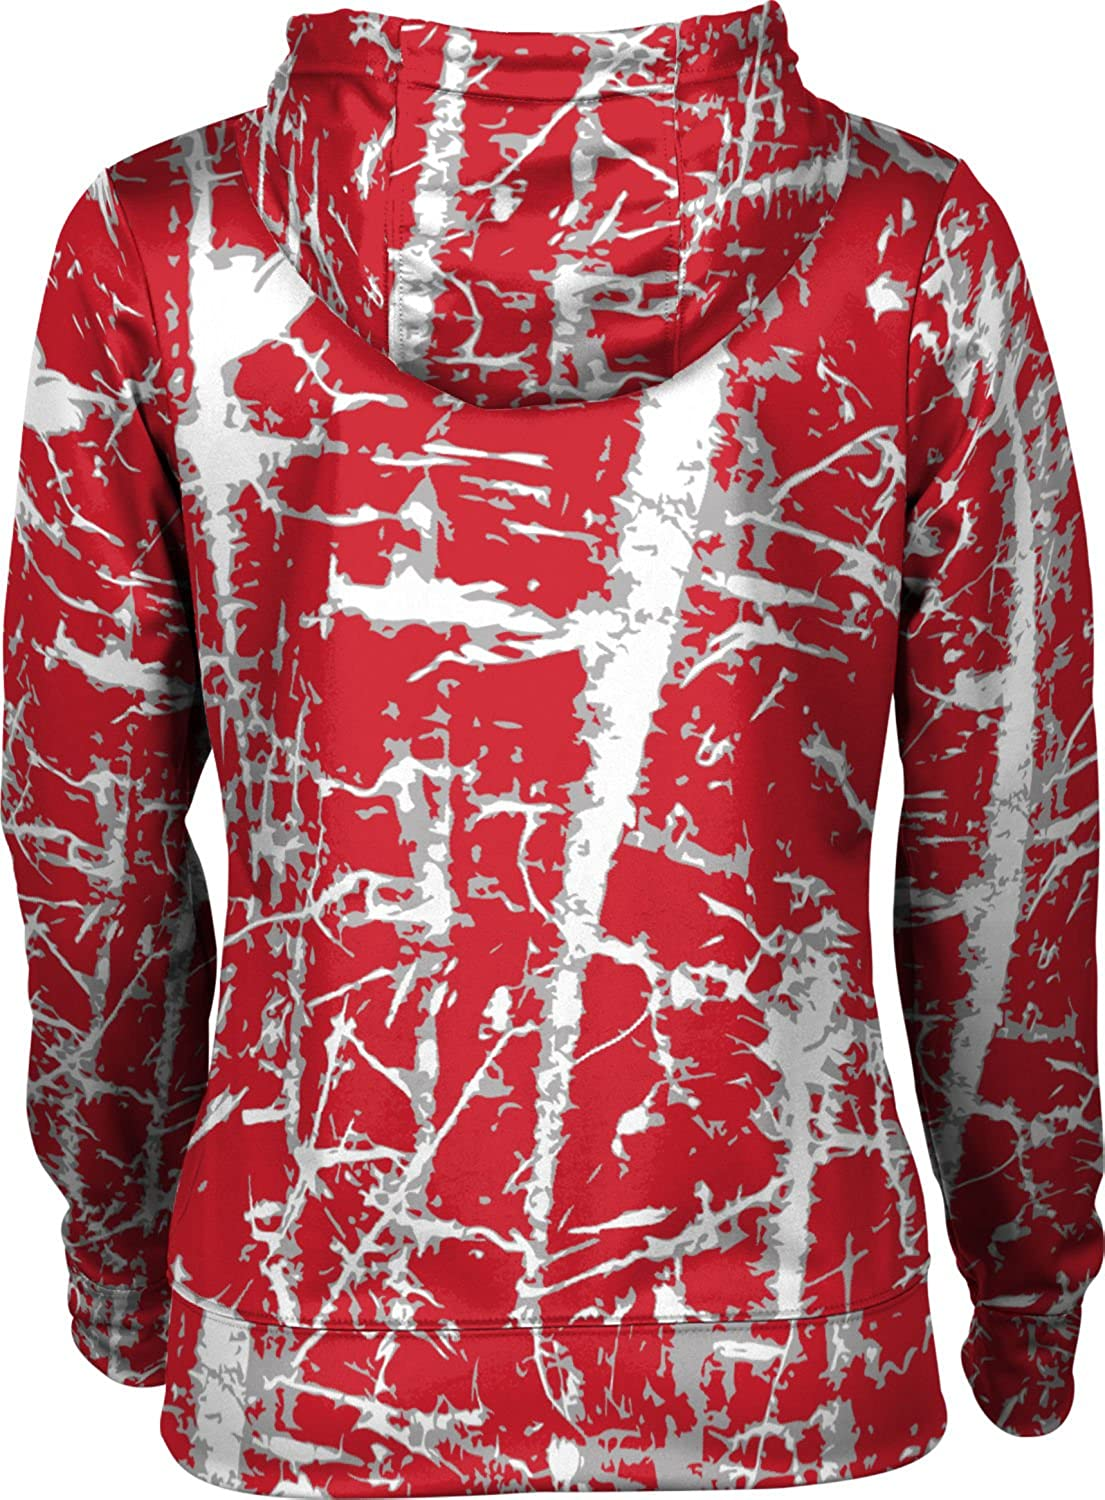 ProSphere Boston University Womens Zipper Hoodie School Spirit Sweatshirt Distressed